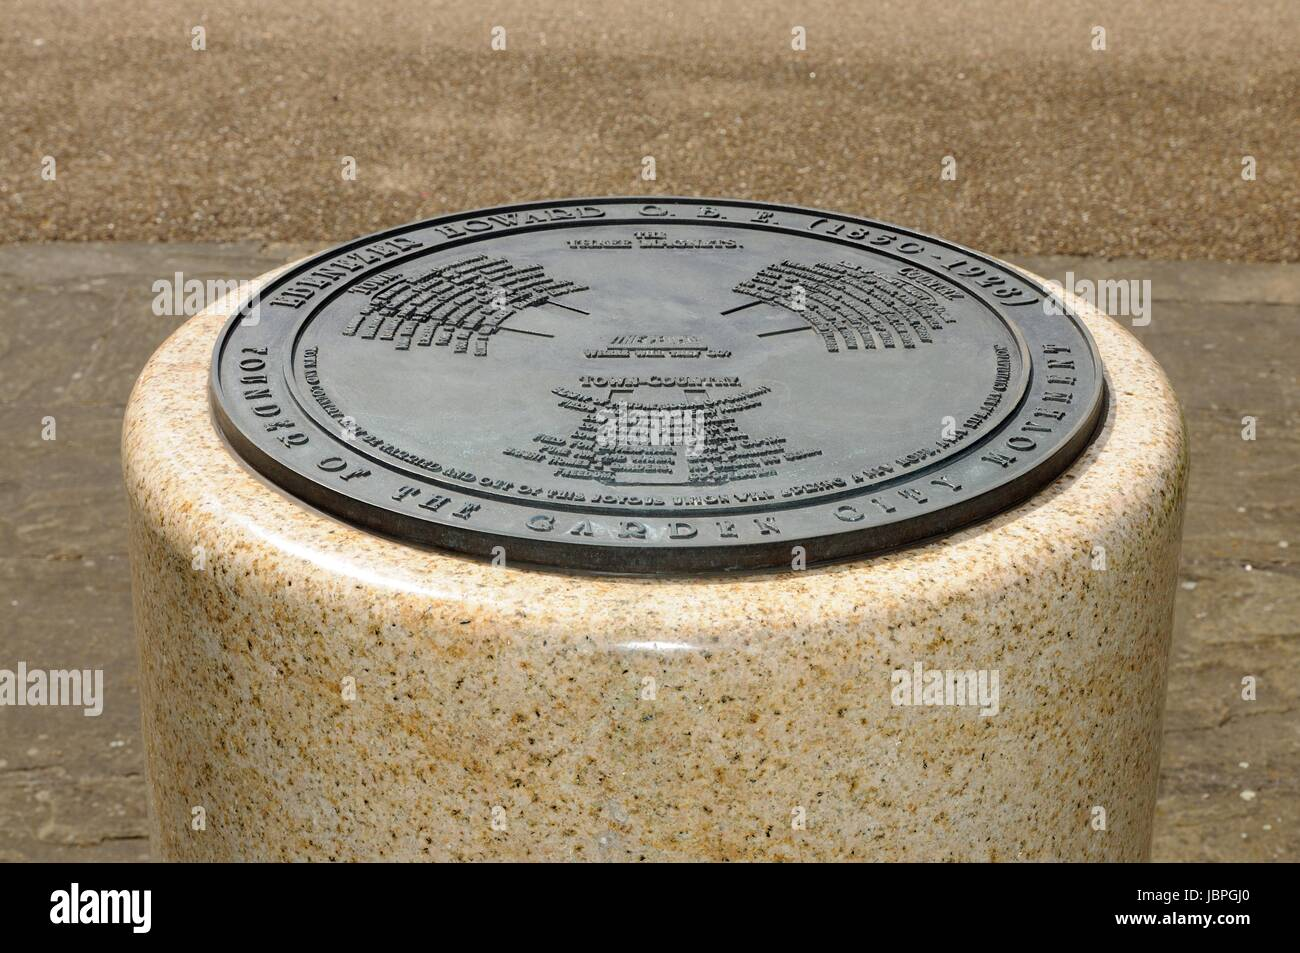 Plaque Commemorating Ebenezer Howard The Founder Of The Garden City Stock Photo Alamy